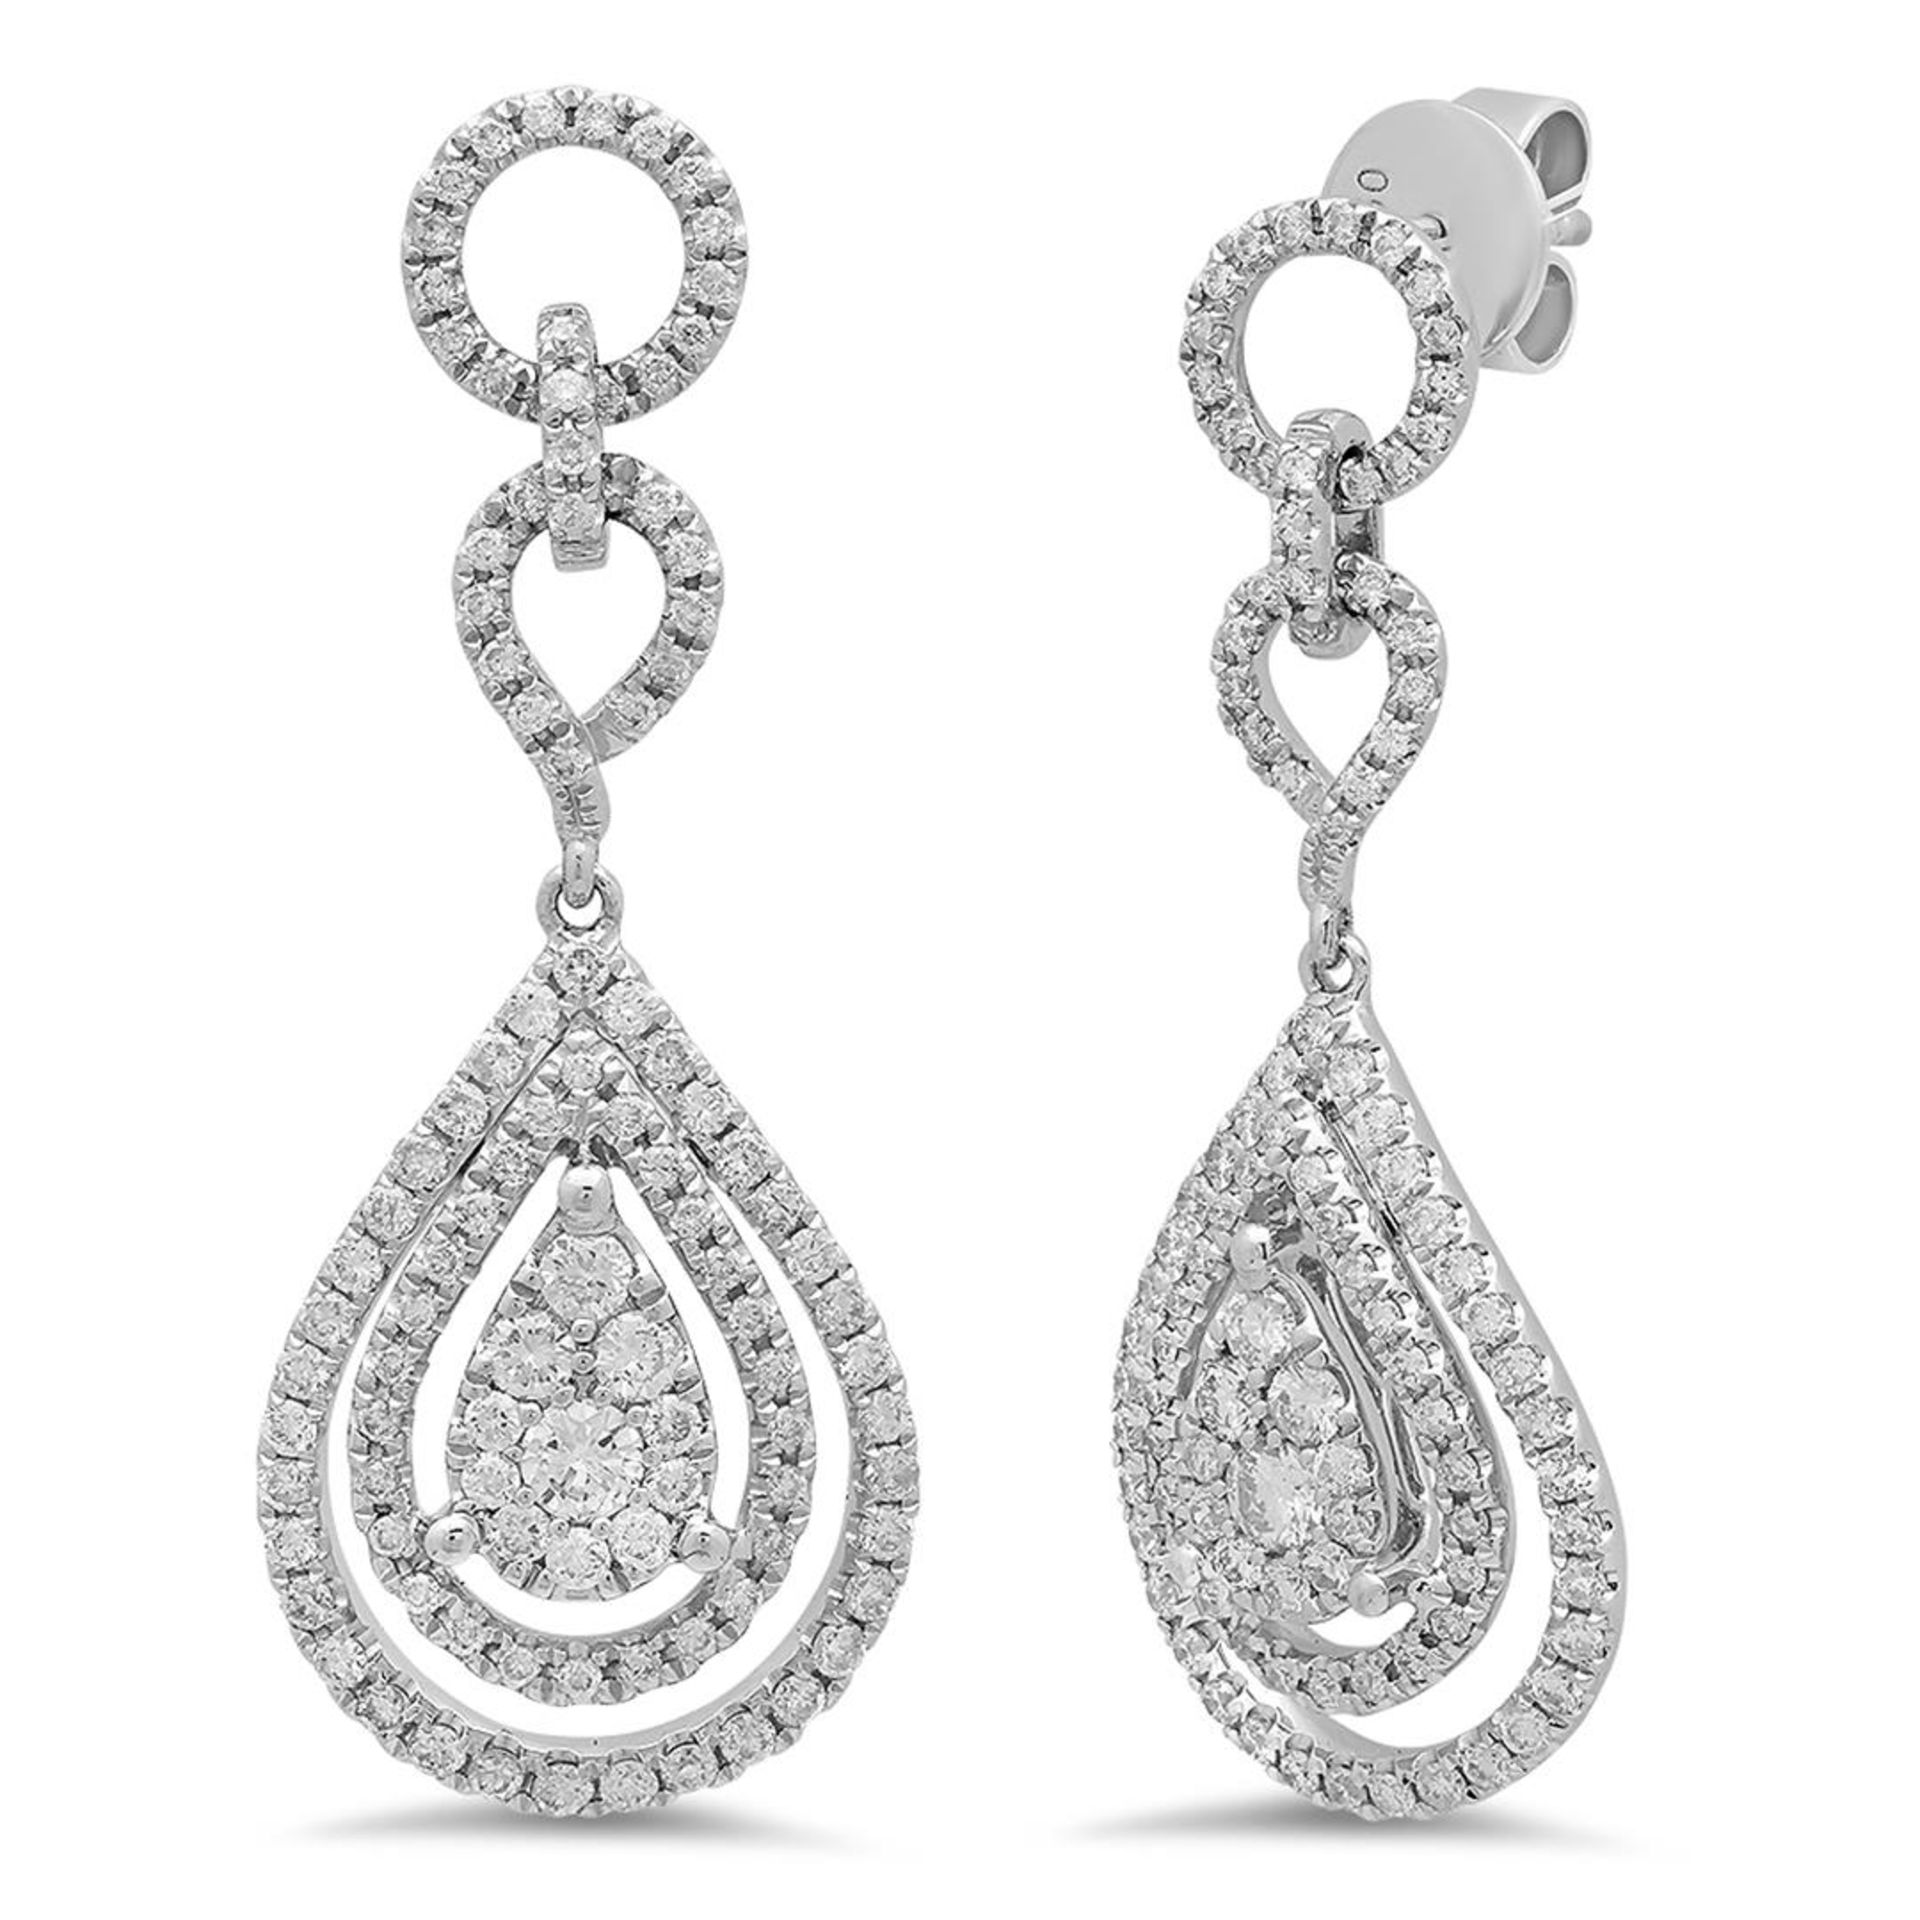 18k White Gold 1.24CTW Diamond Earrings, (SI1-SI2/G-H)